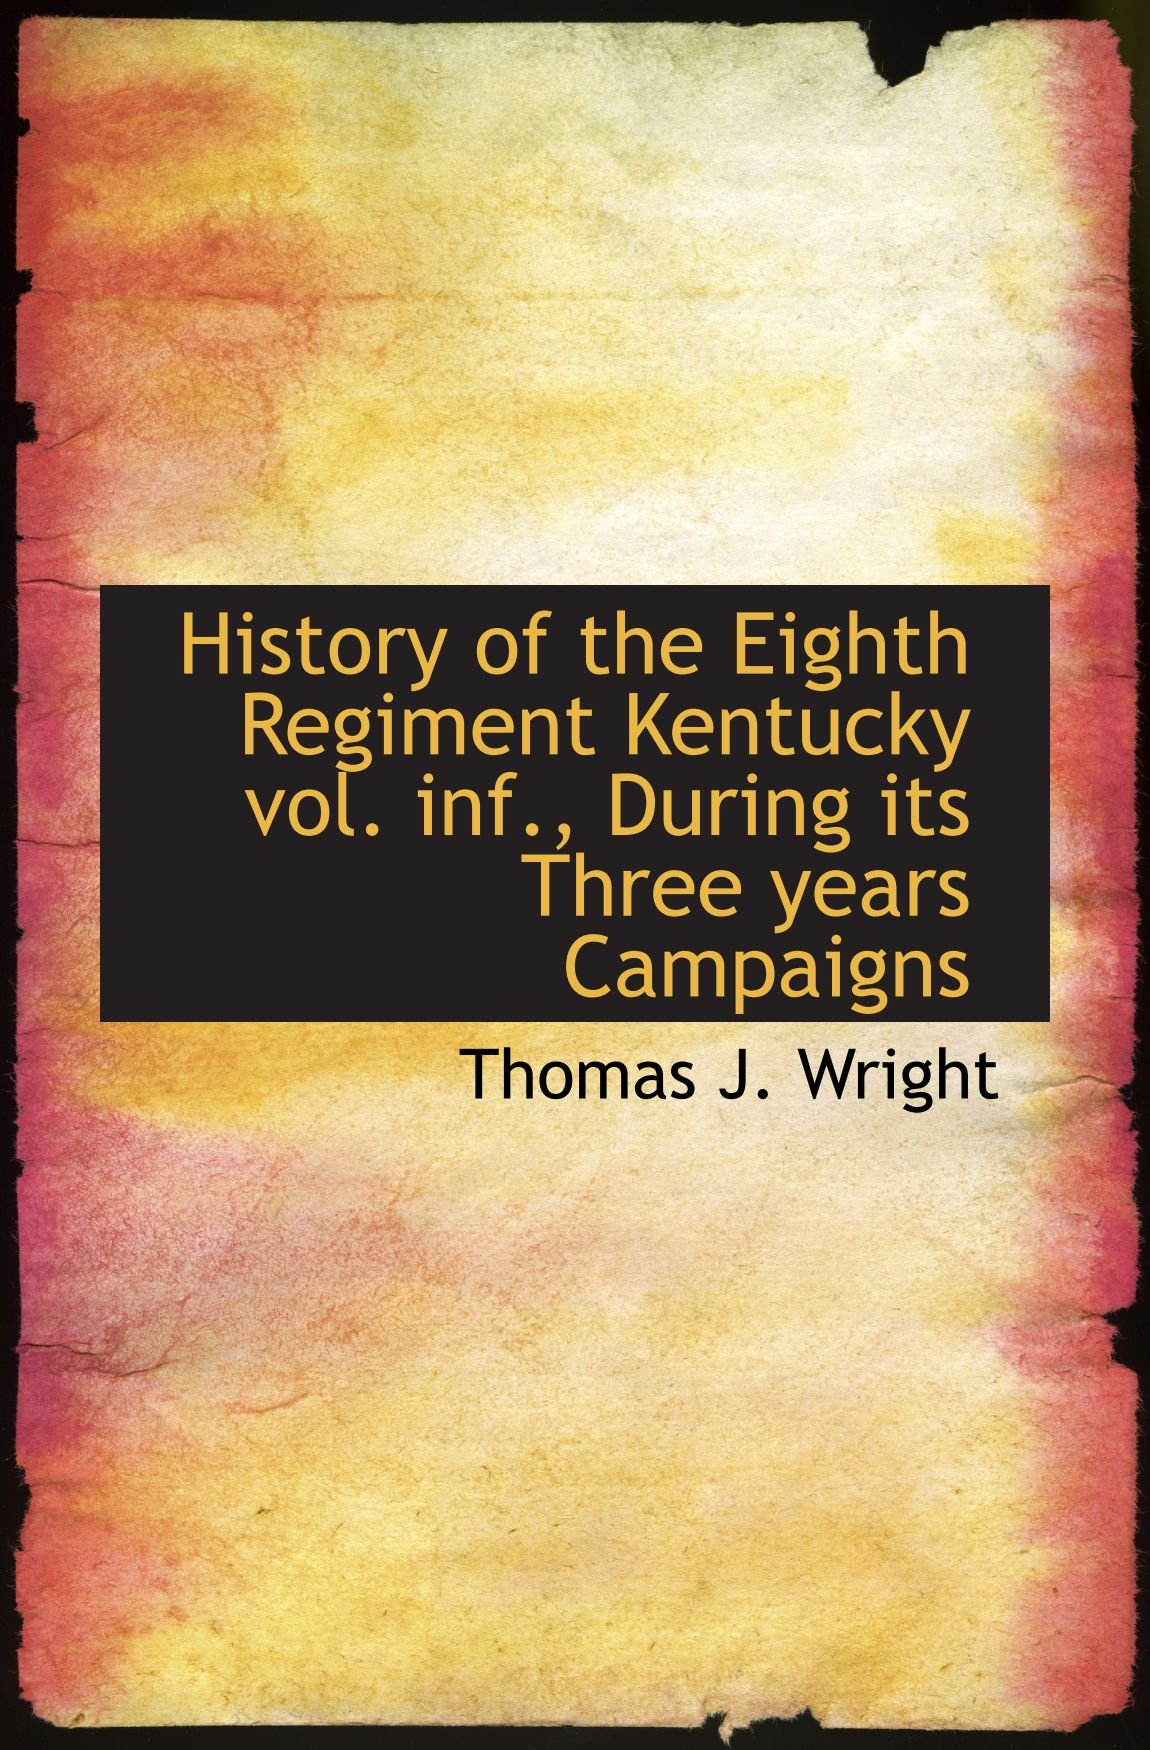 Read Online History of the Eighth Regiment Kentucky vol. inf., During its Three years Campaigns pdf epub